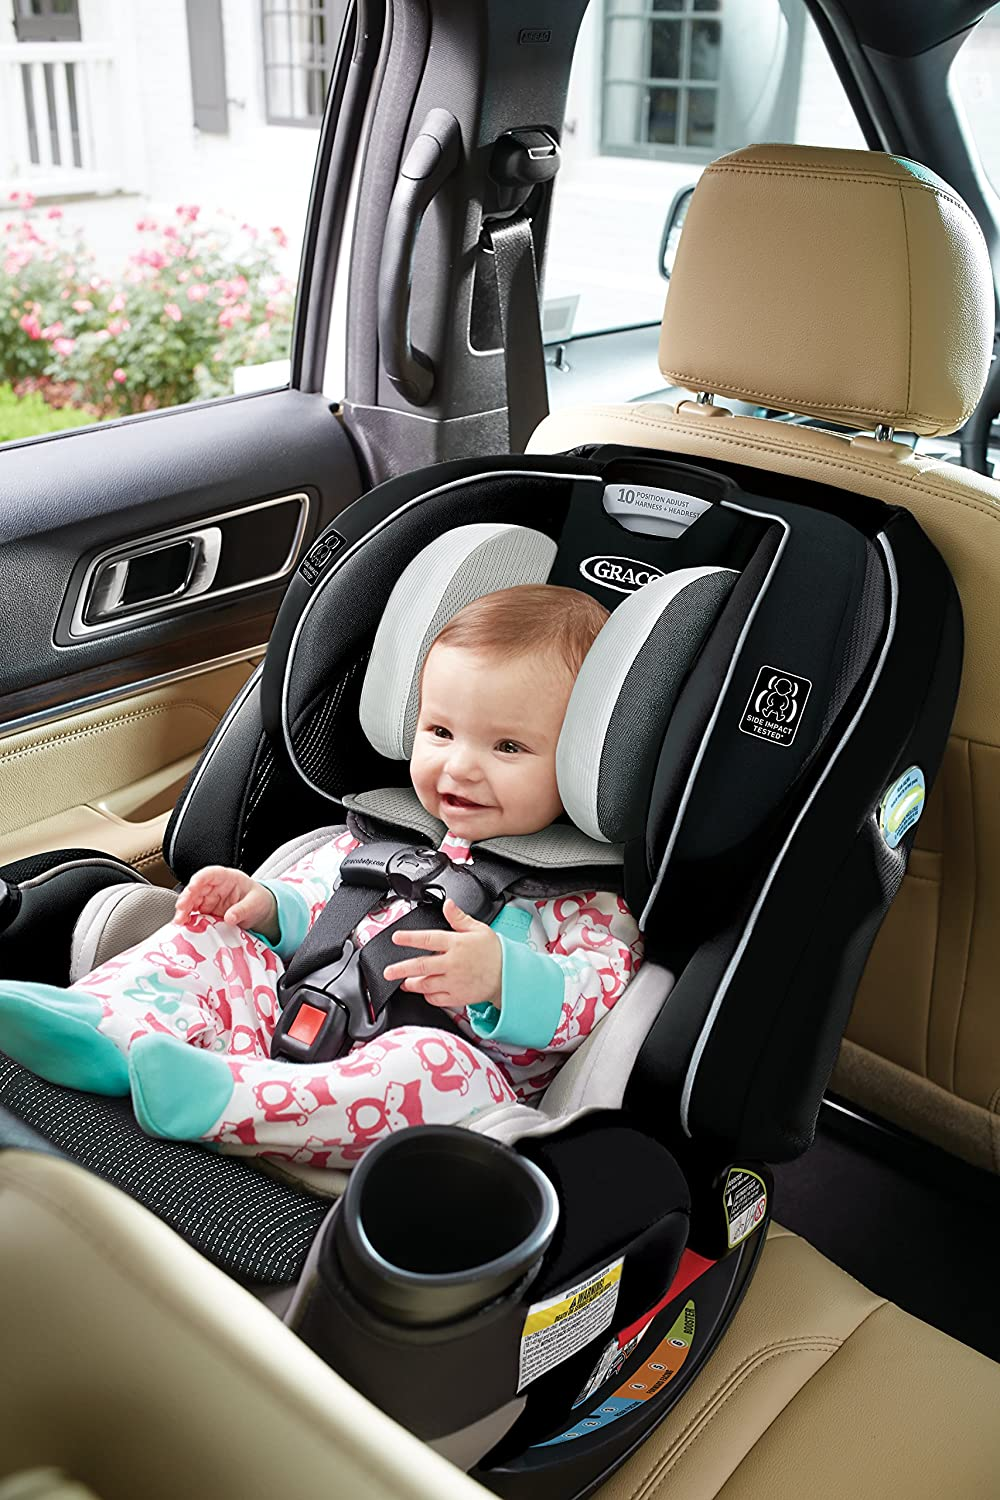 Amazoncom  Graco 4Ever Extend2Fit All in One Convertible Car